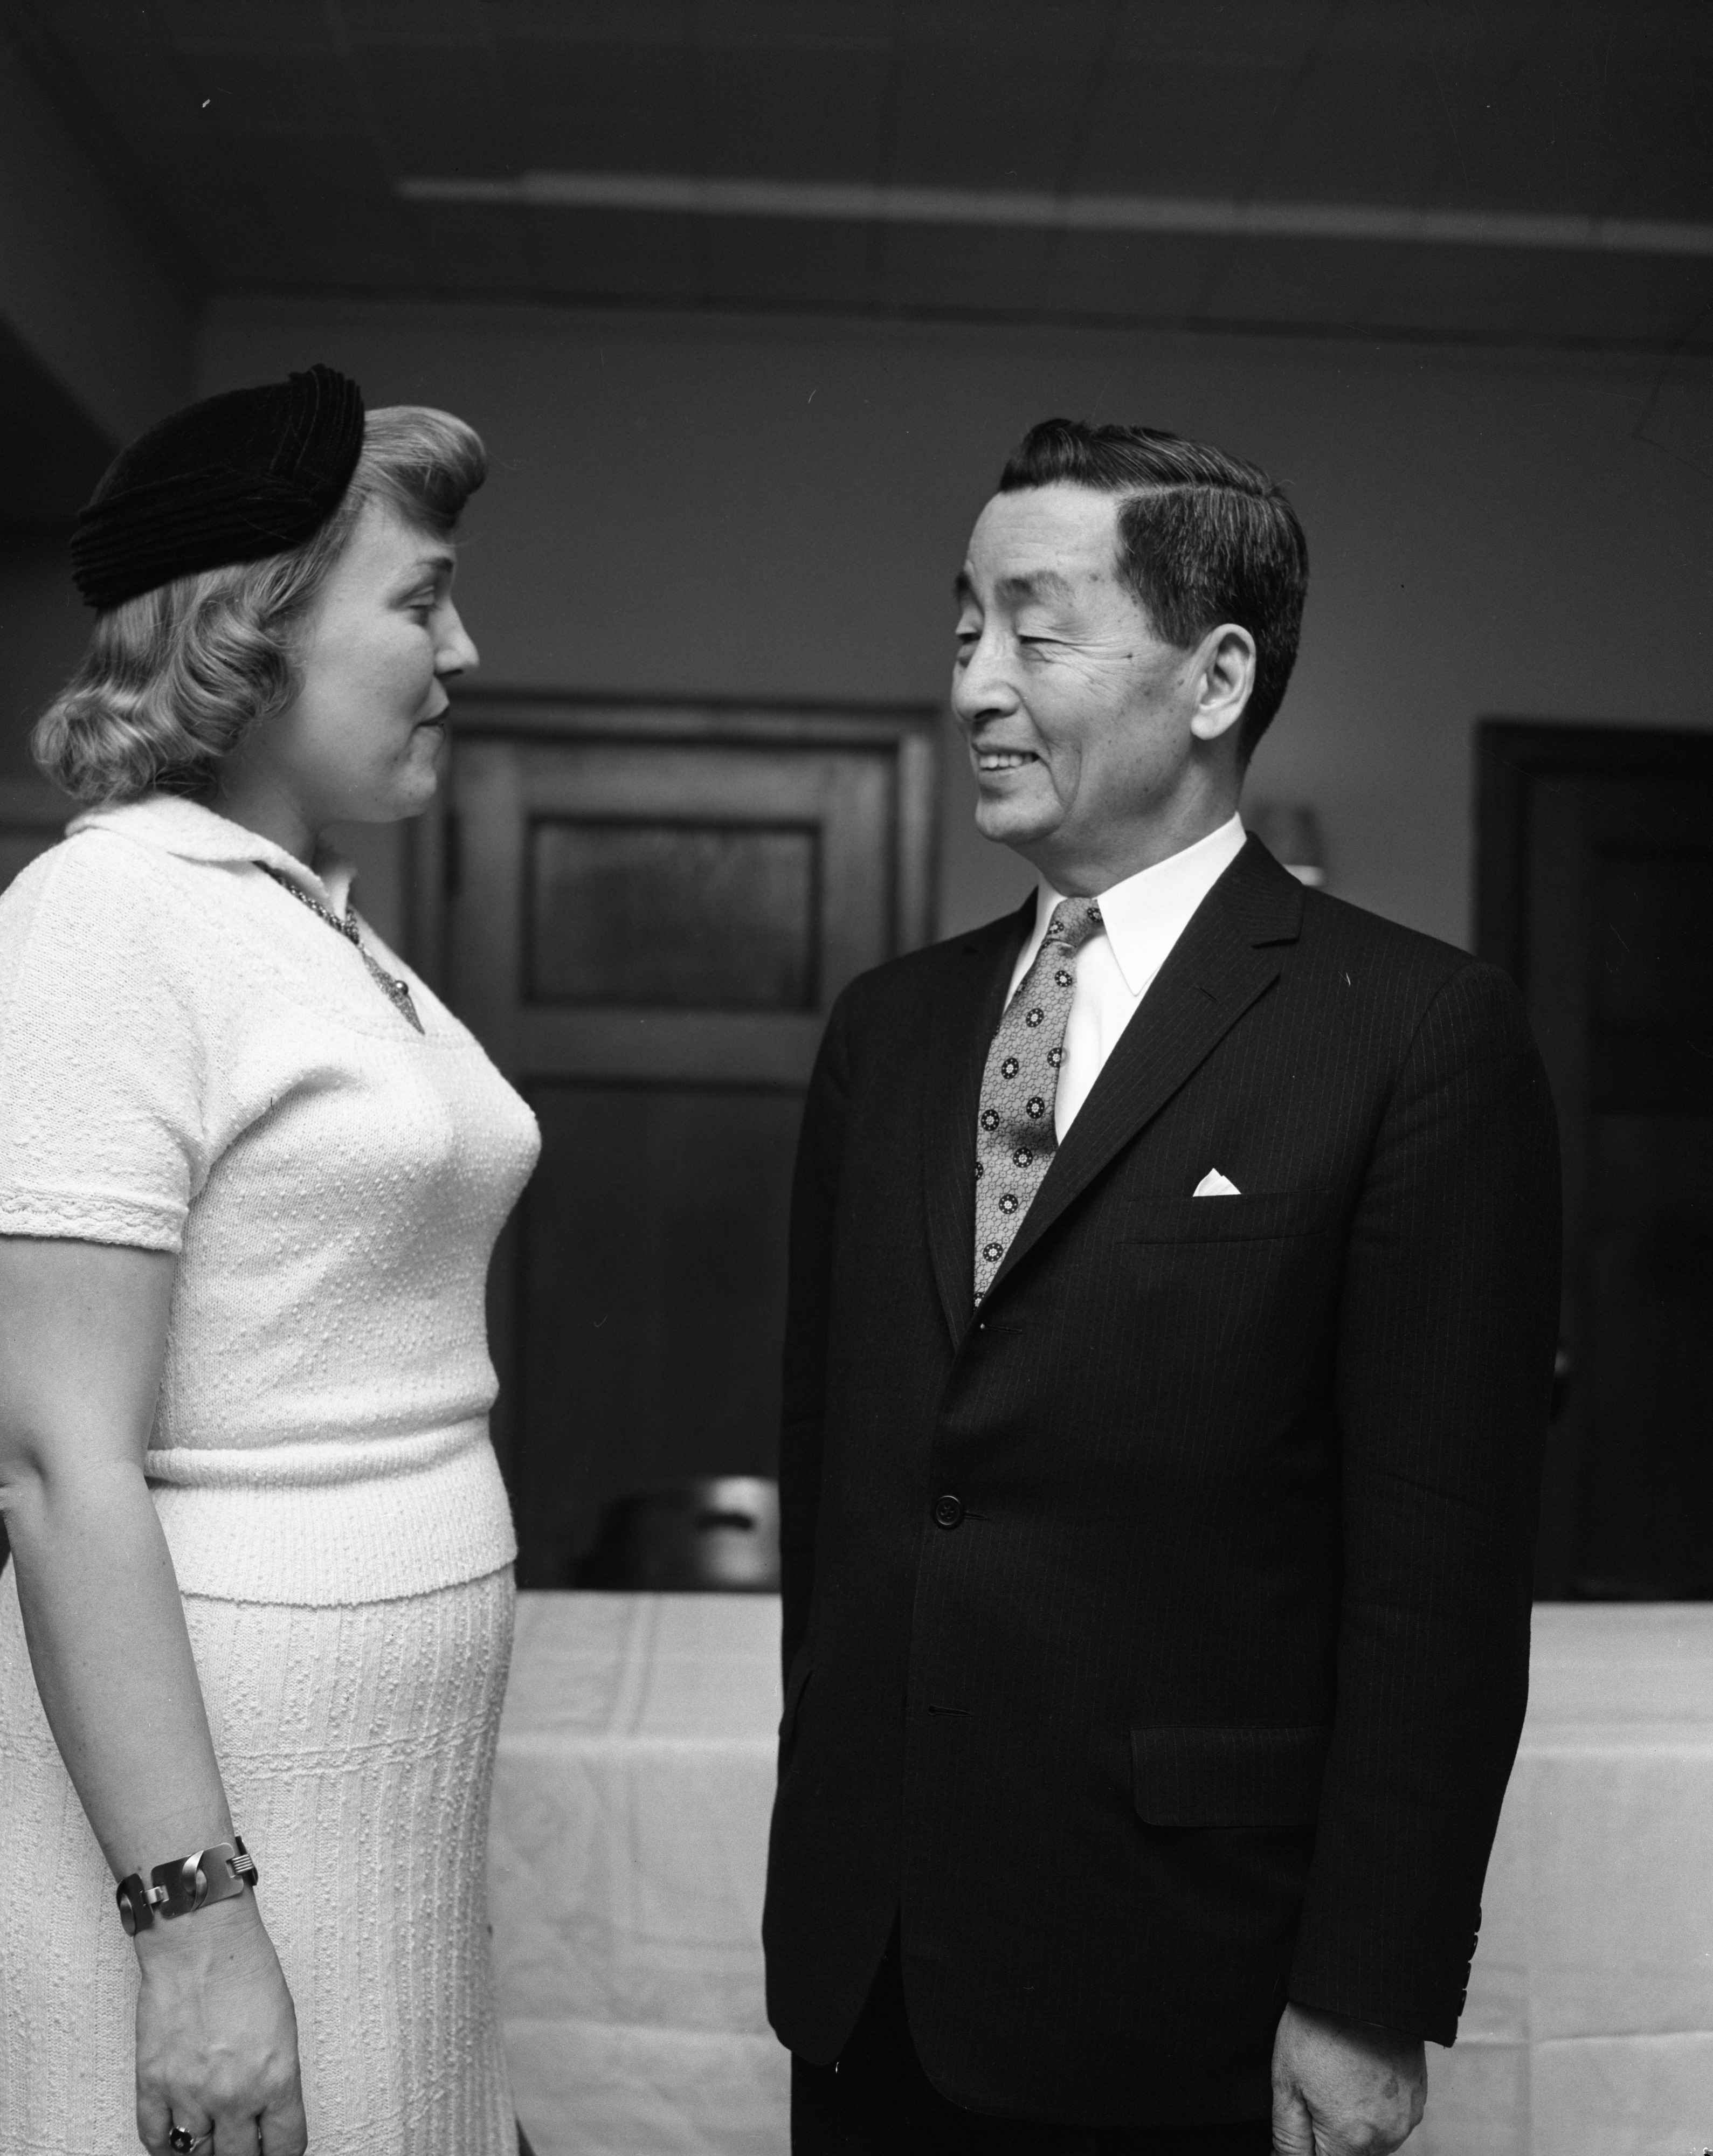 Ben C. Limb, Minister of Foreign Affairs for Korea, and Lucy Stephenson, March 1960 image